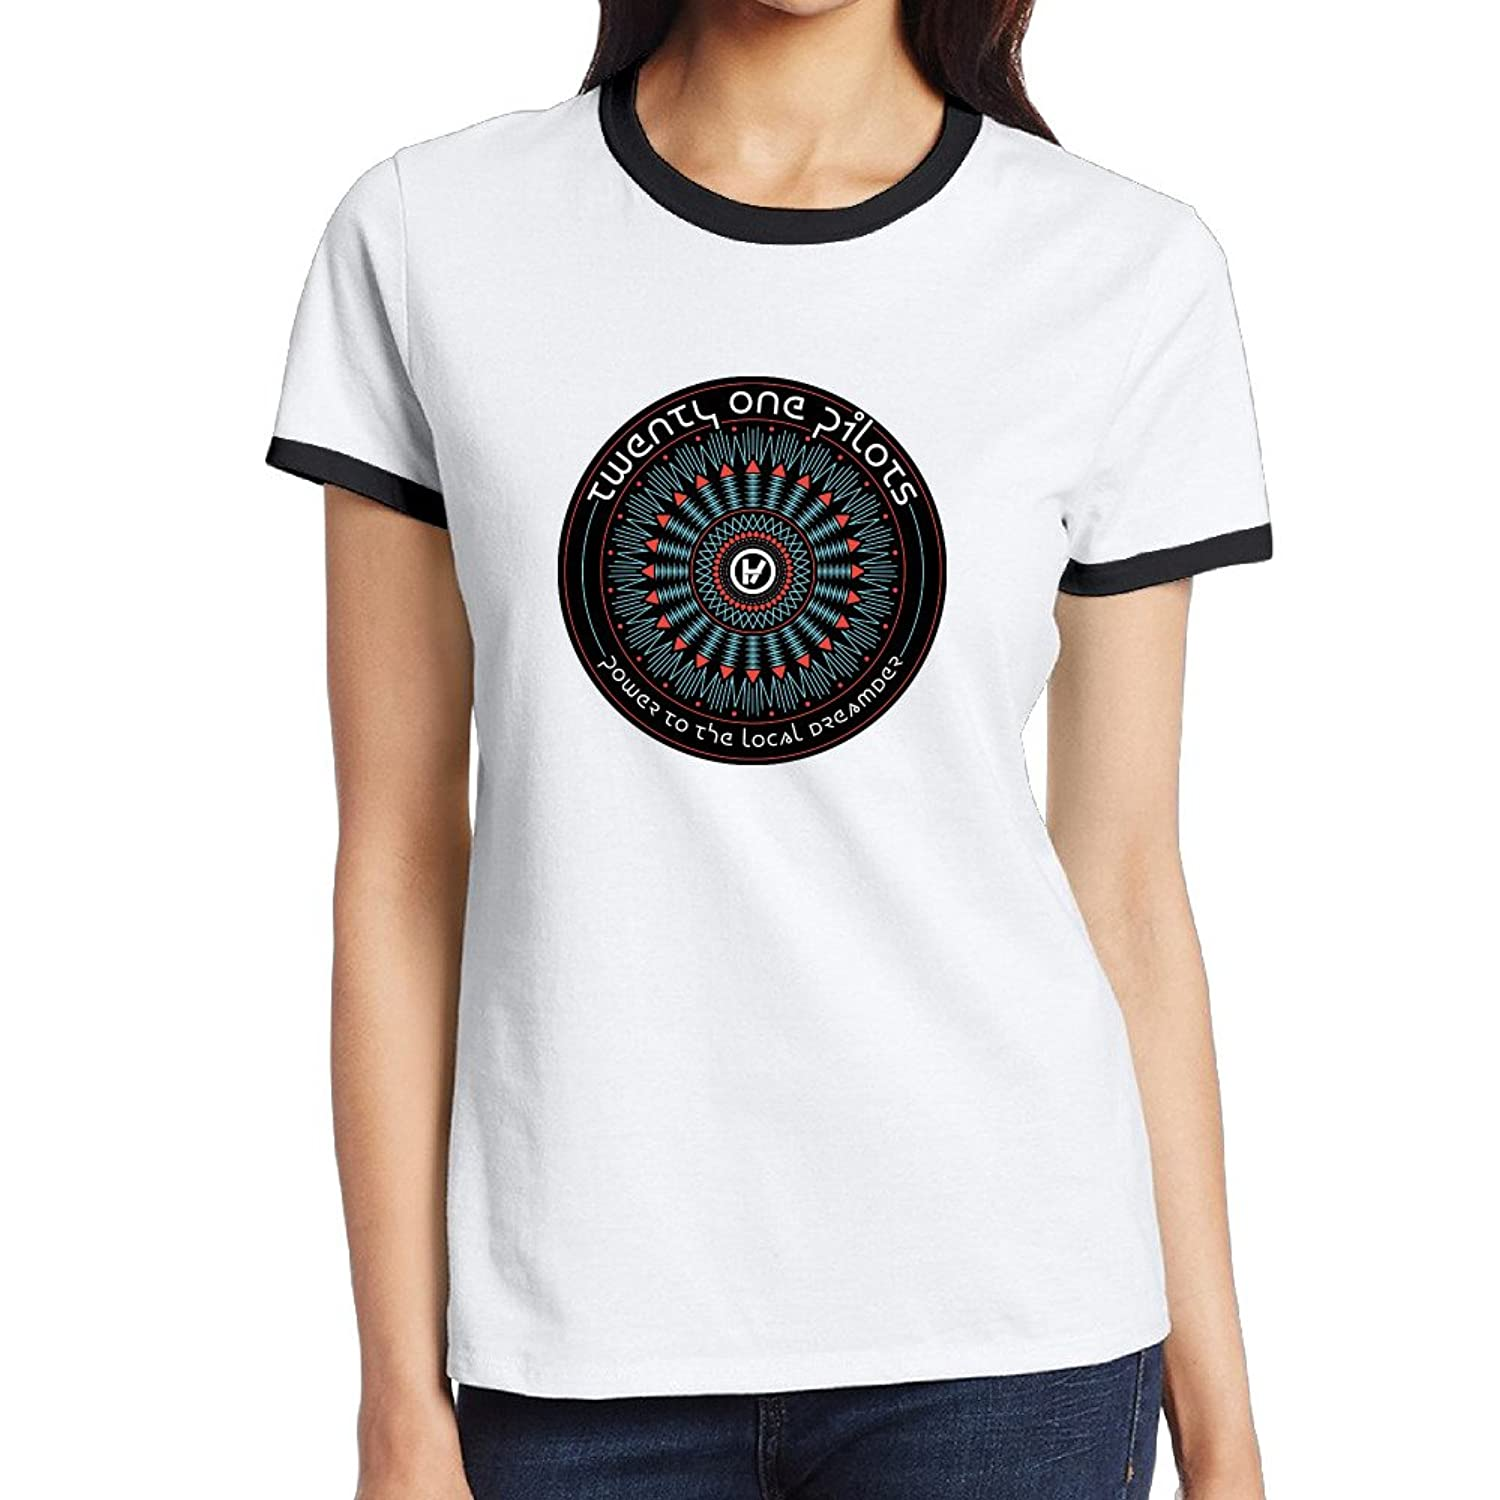 Jade Men's Two-toned T-shirt-Particular Musical Duo Band CIRLCLE LOGO Black